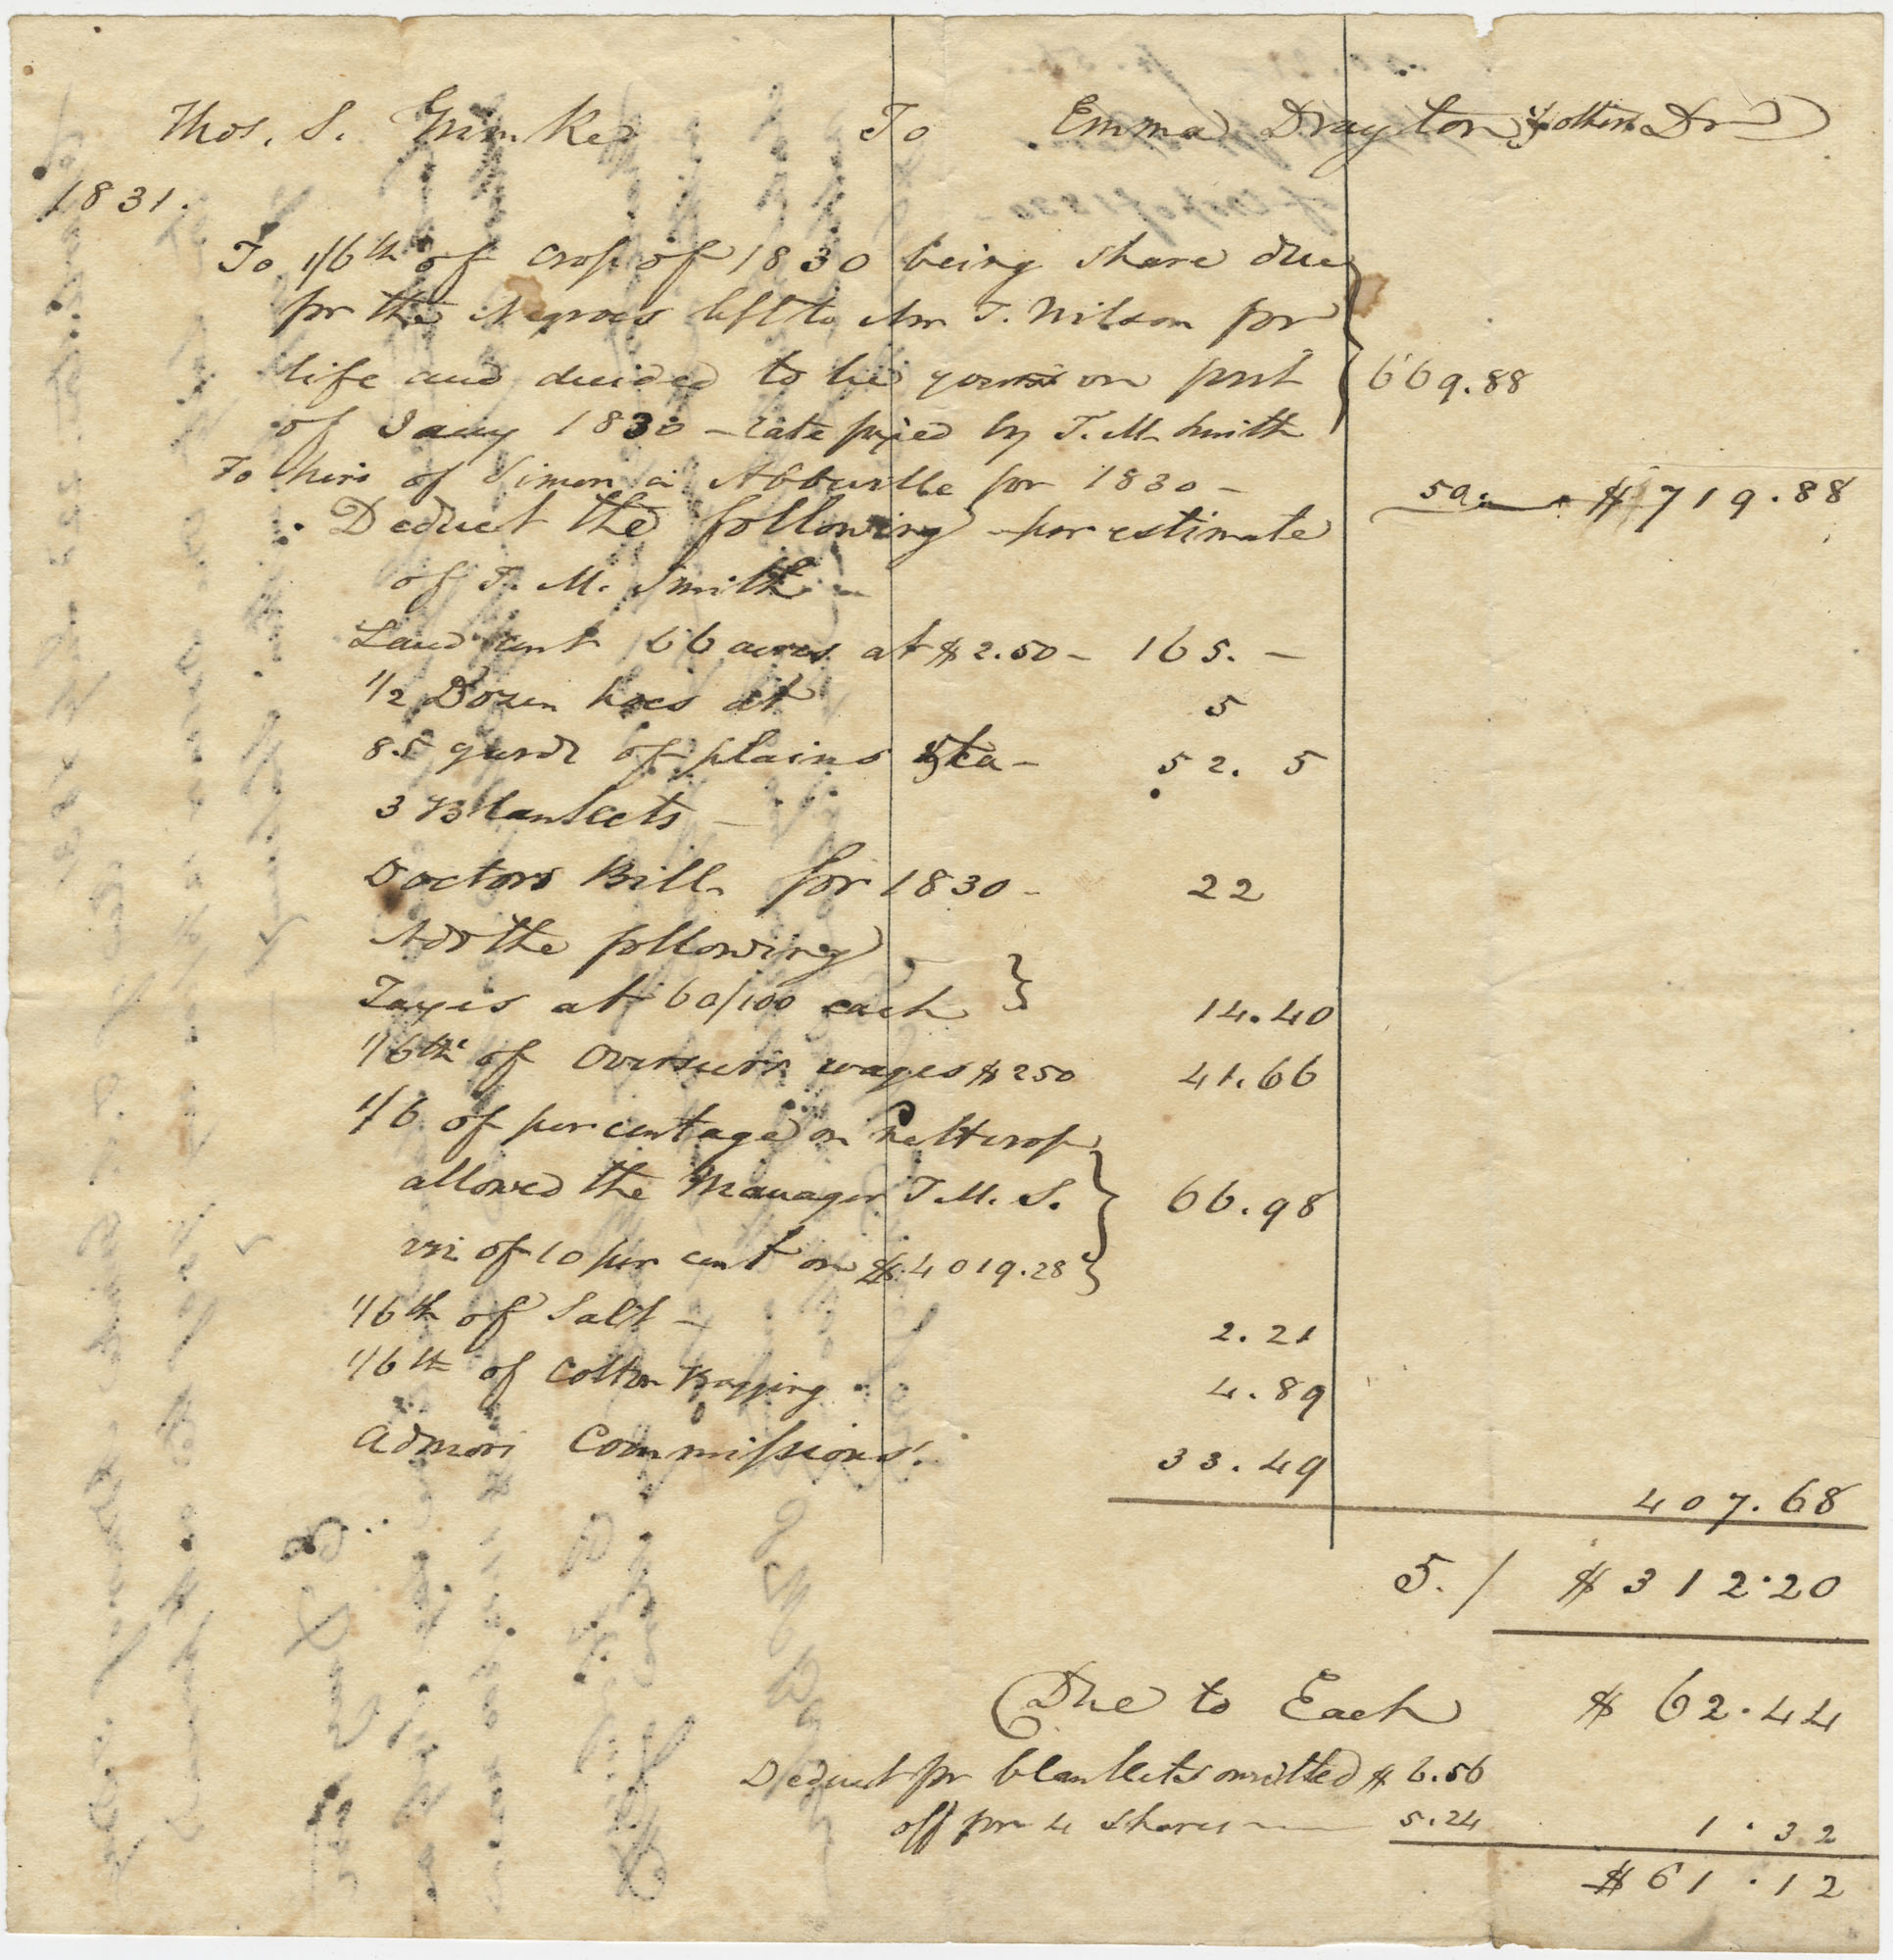 Receipt of Shares of Crop from Thomas Grimke to Emma Drayton, 1831